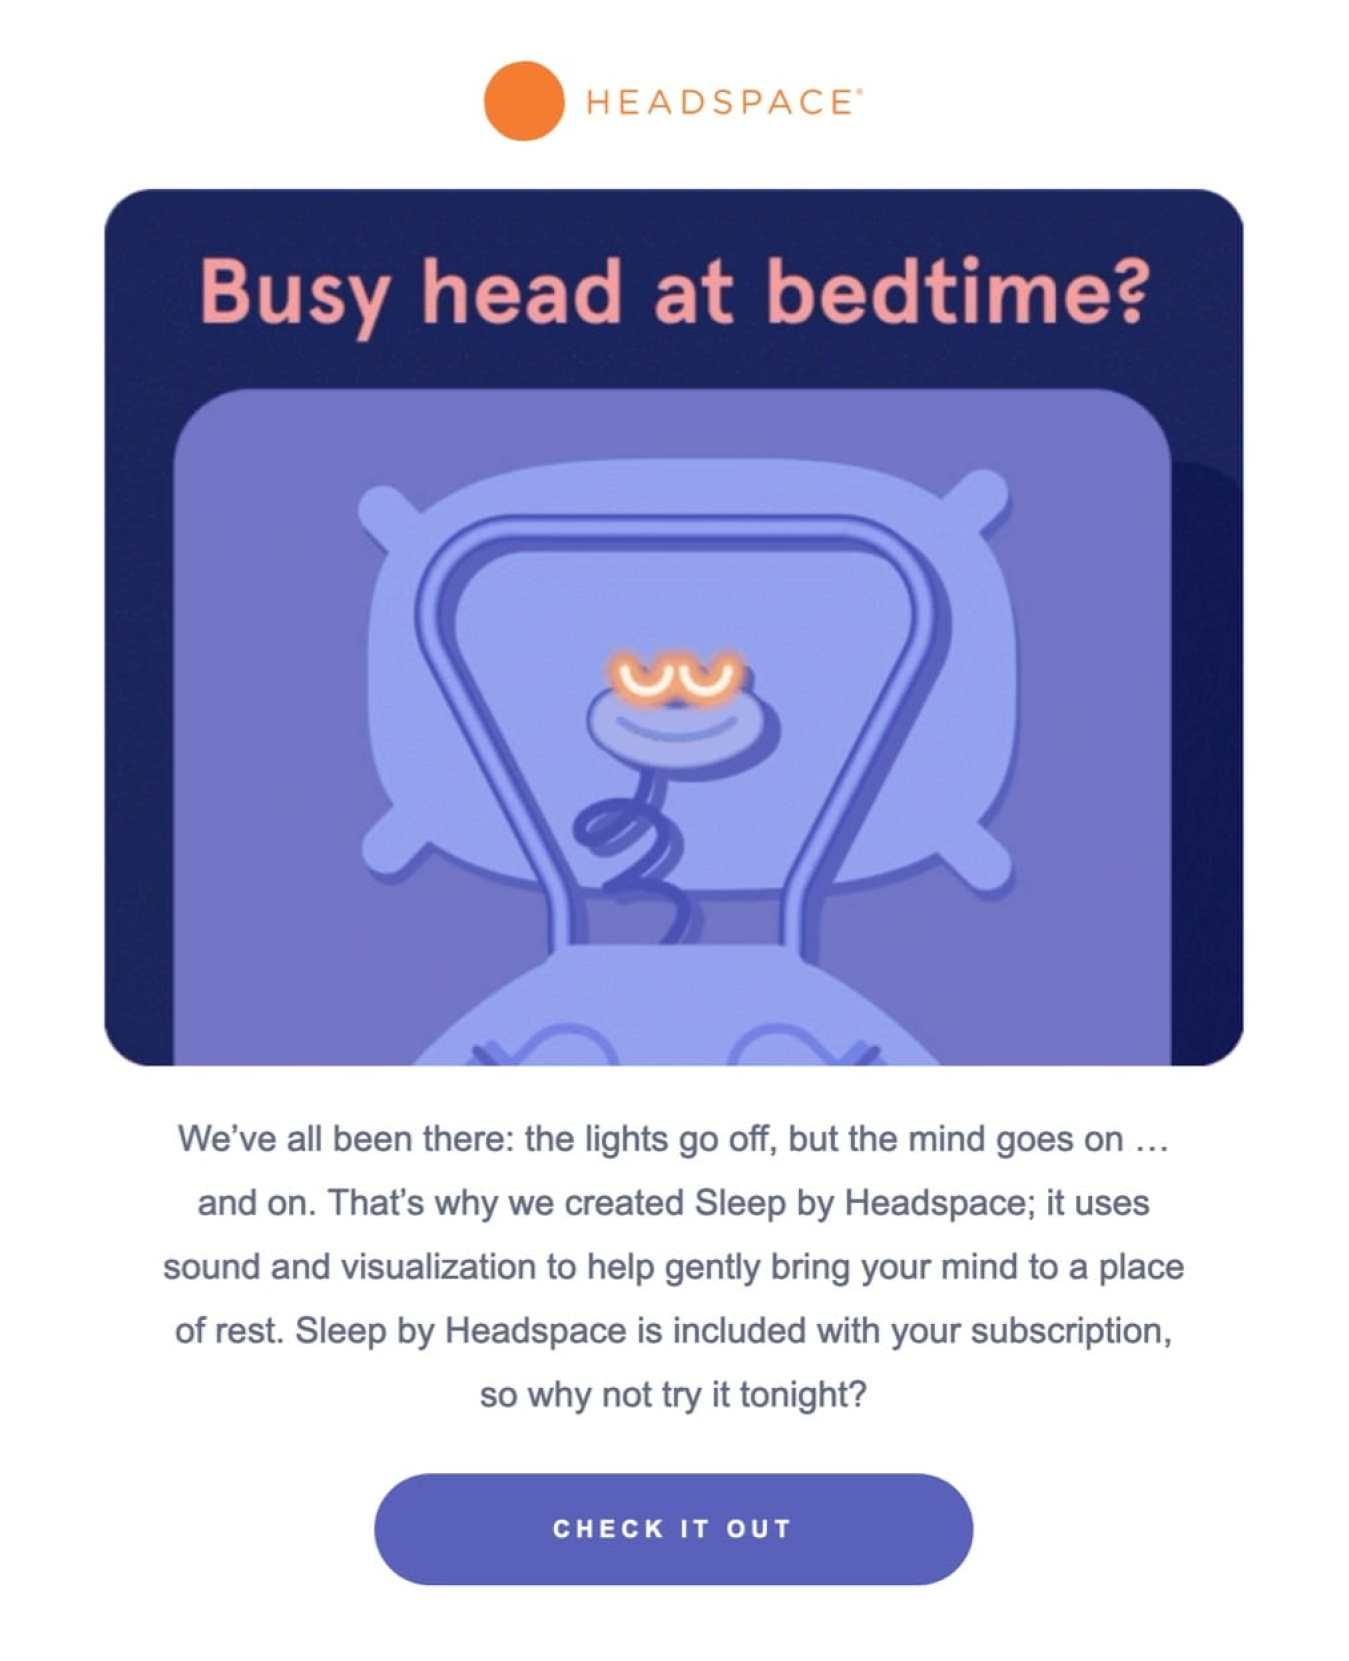 email-marketing-best-practices-headspace-sleep